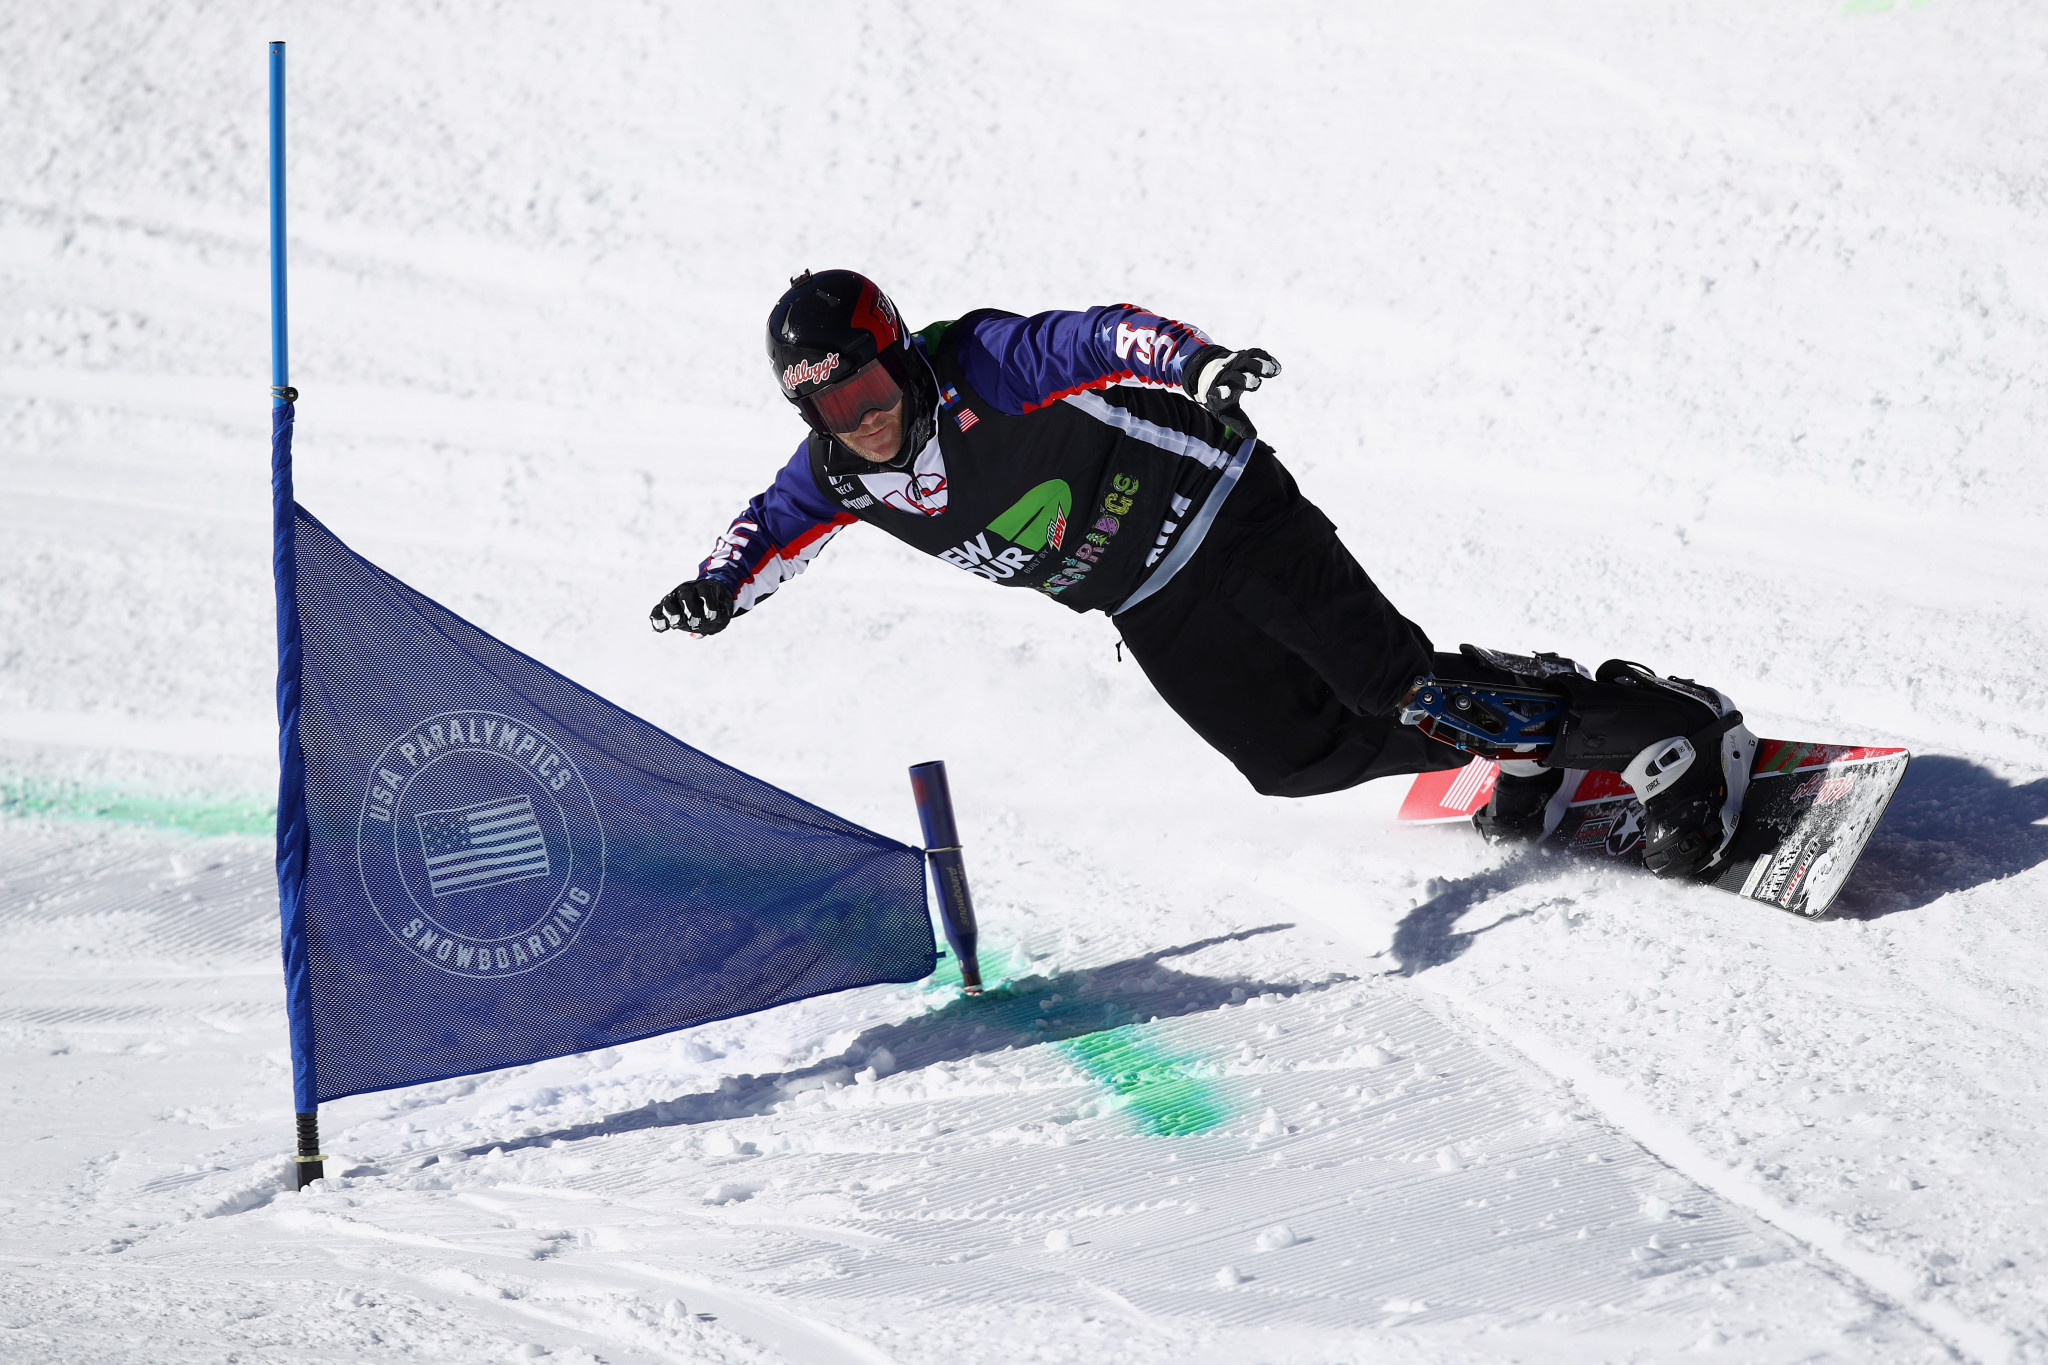 Mike Schultz has emerged as one of the top snowboarders in the world since joining the United States team in 2015 ©Getty Images